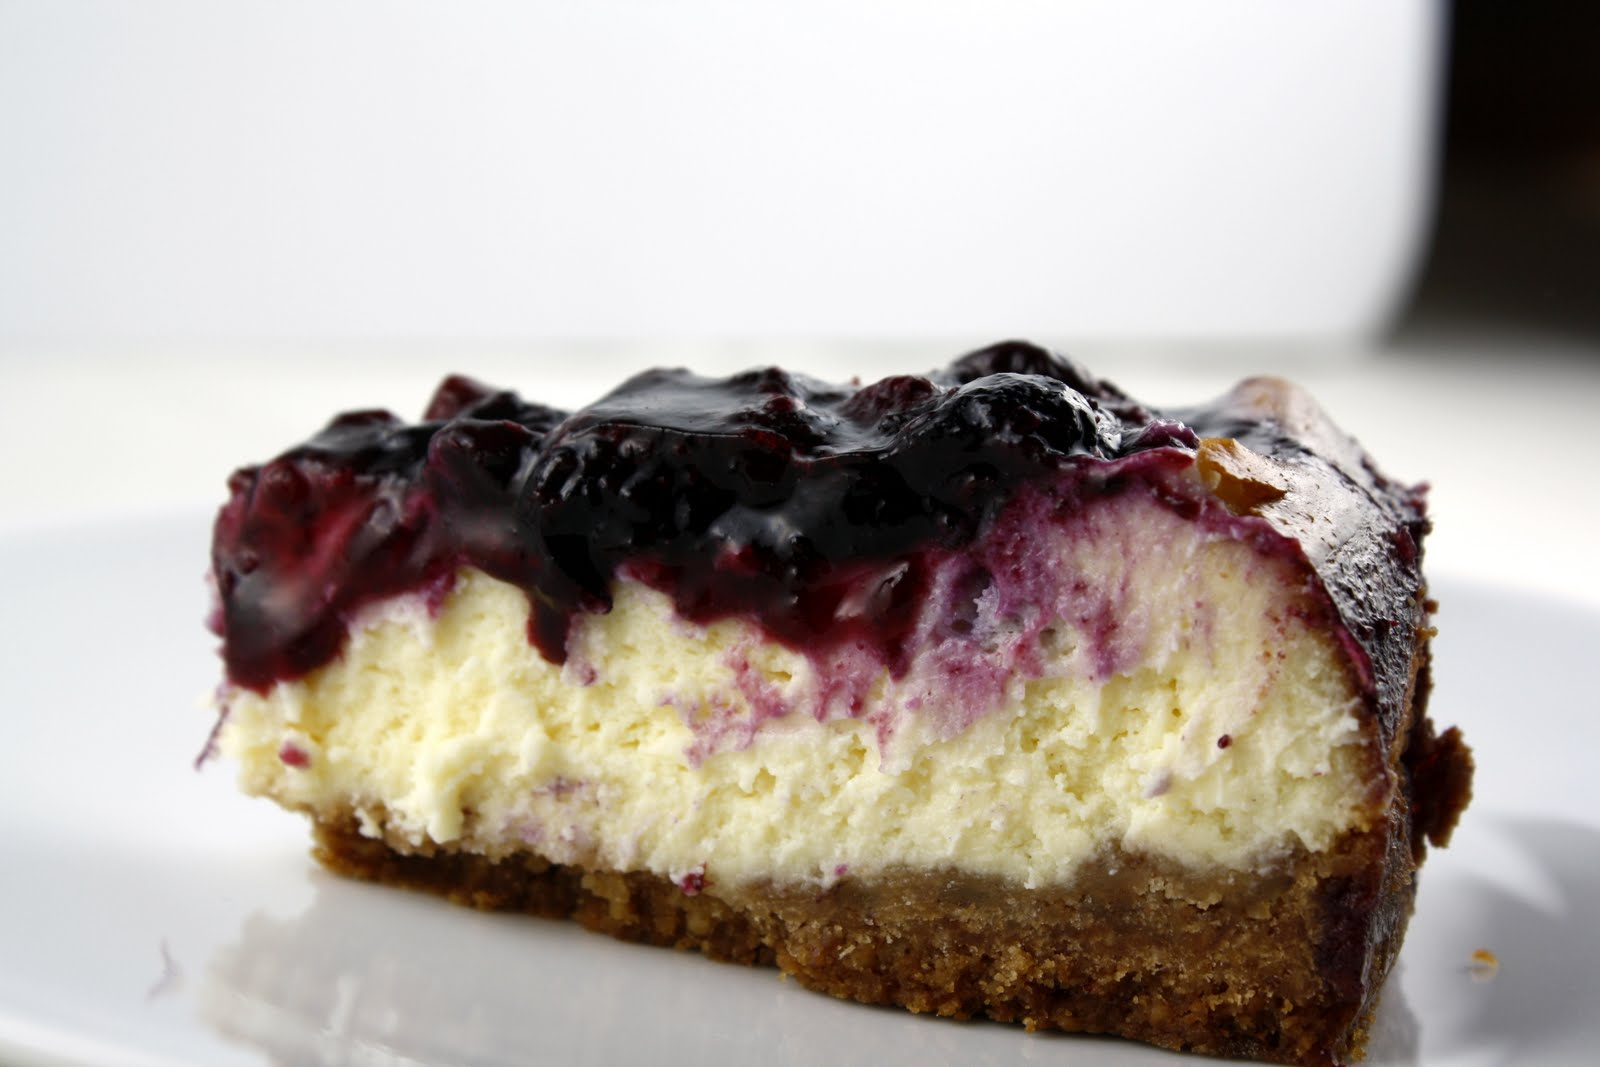 Blueberry Cheesecake | What Megan's Making